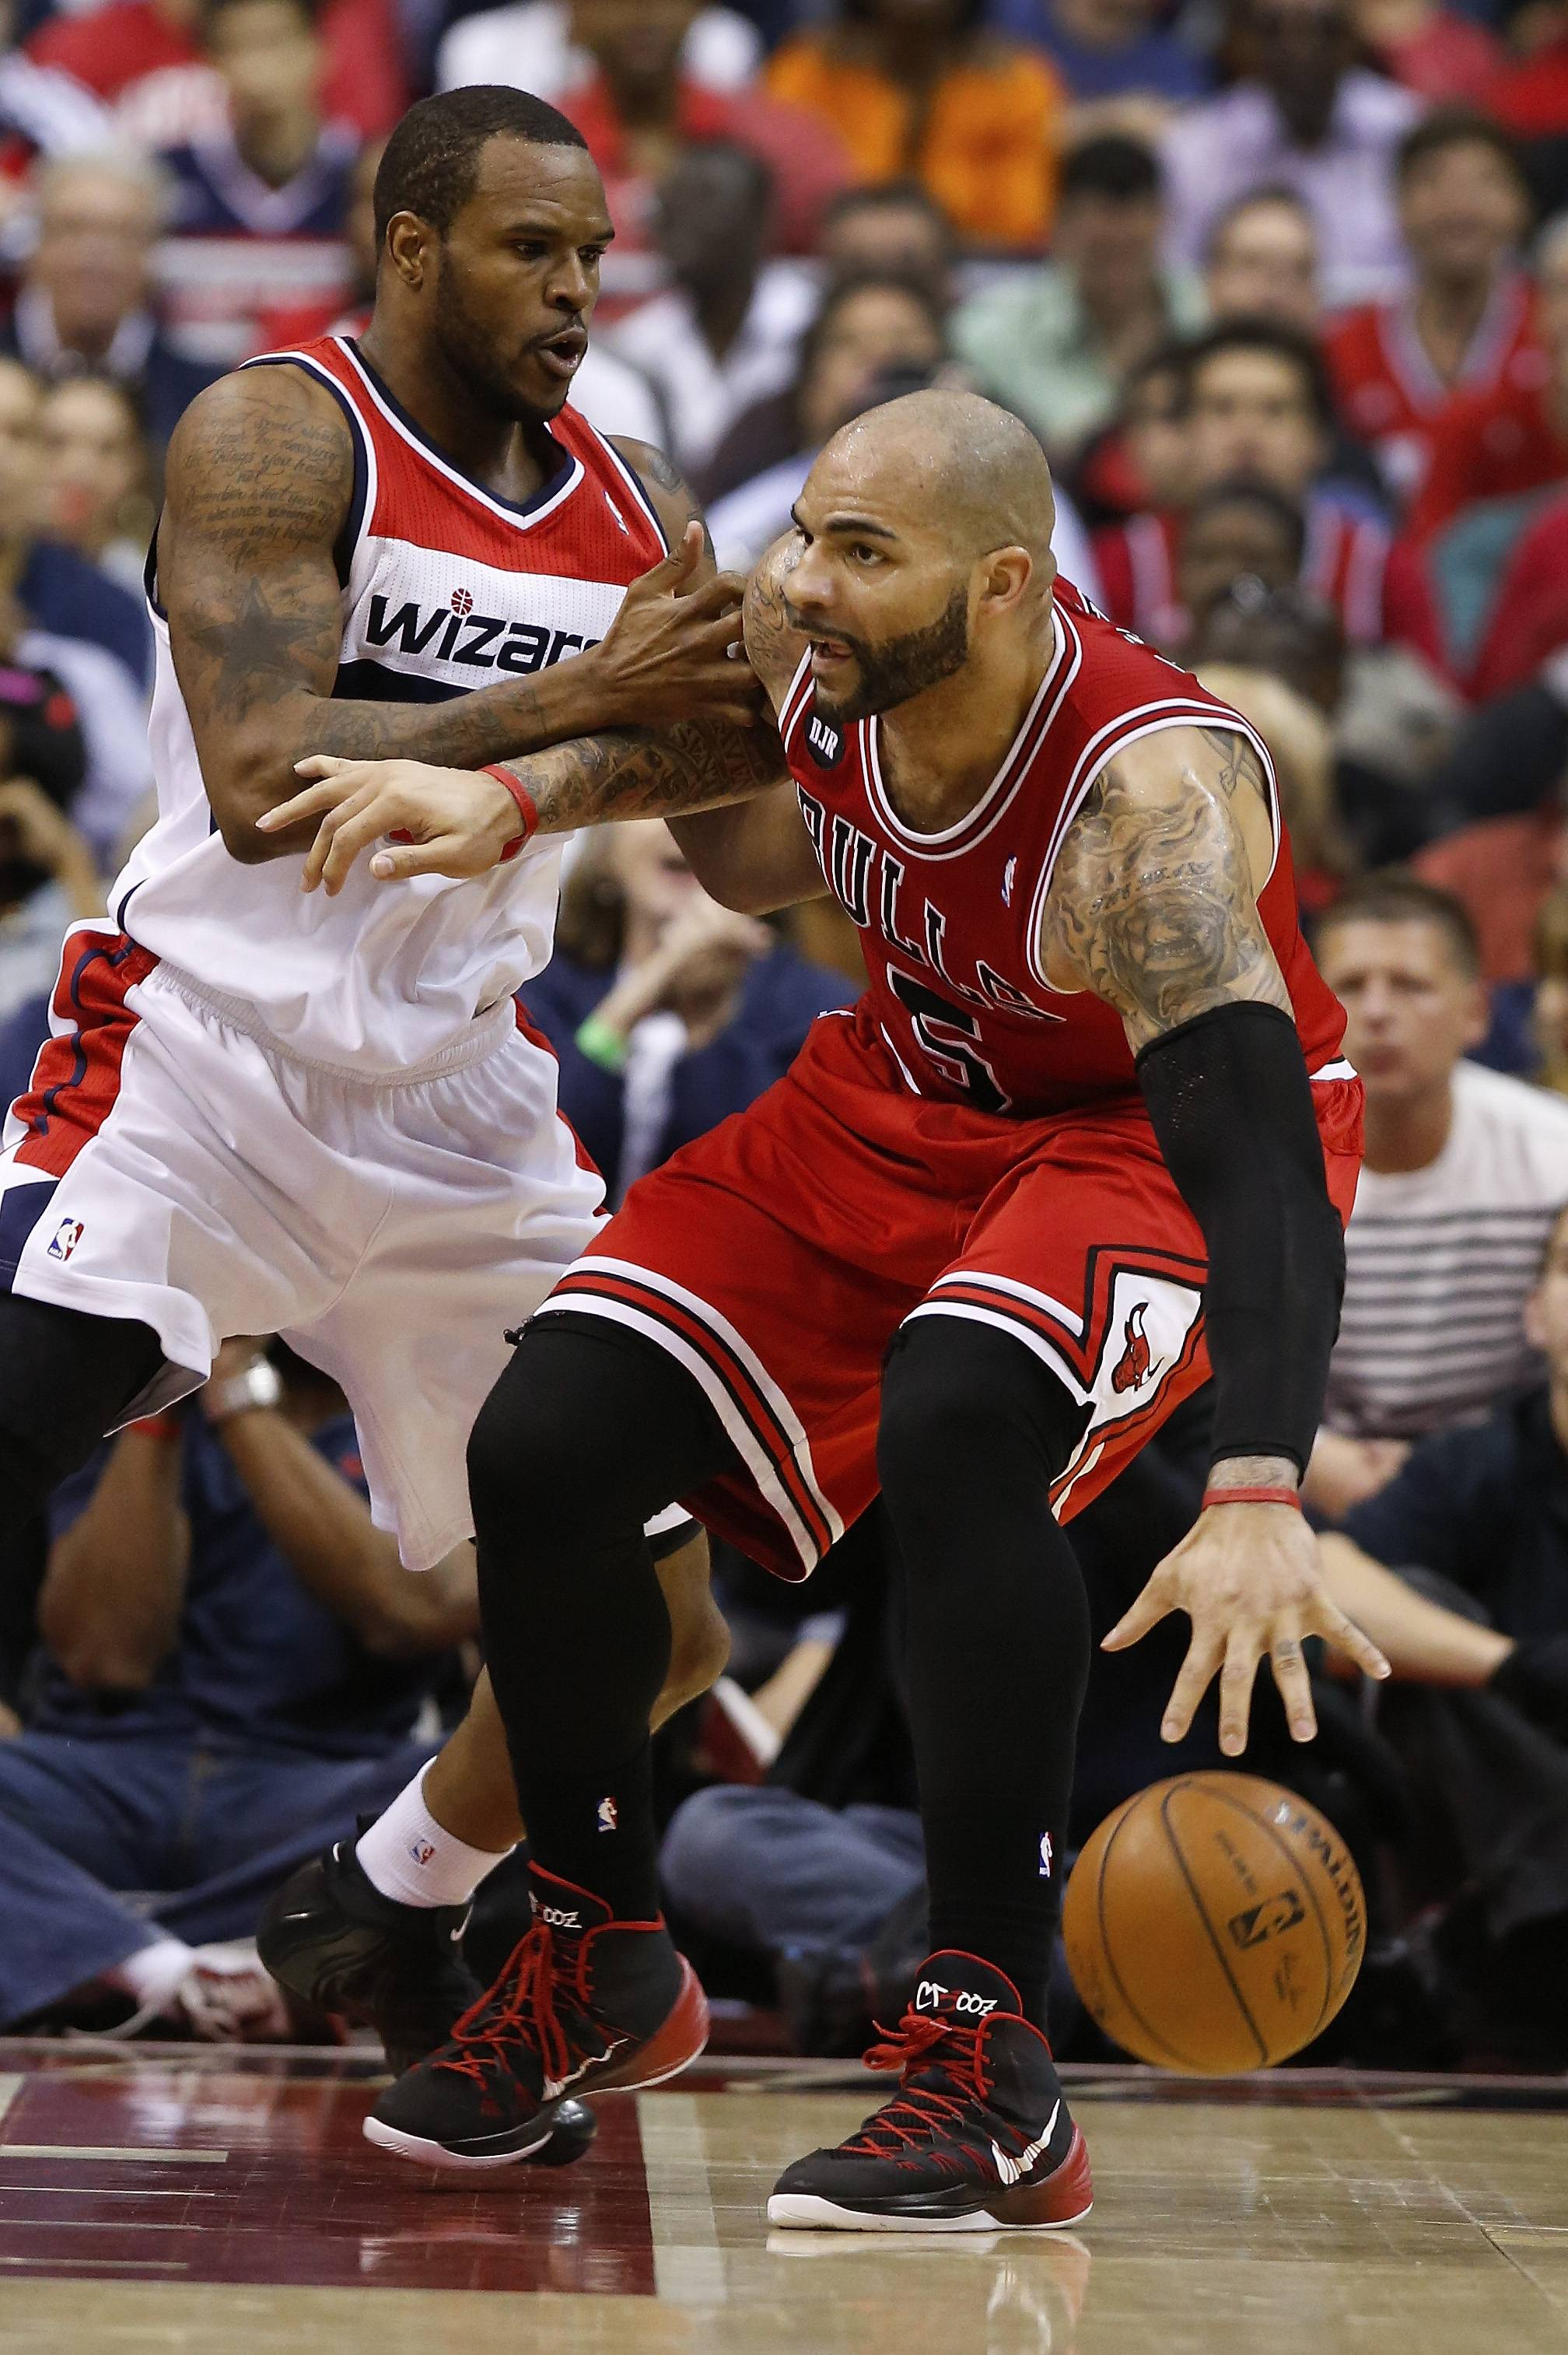 Chicago Bulls forward Carlos Boozer (5) drives past Washington Wizards forward Trevor Booker (35) during the second half.